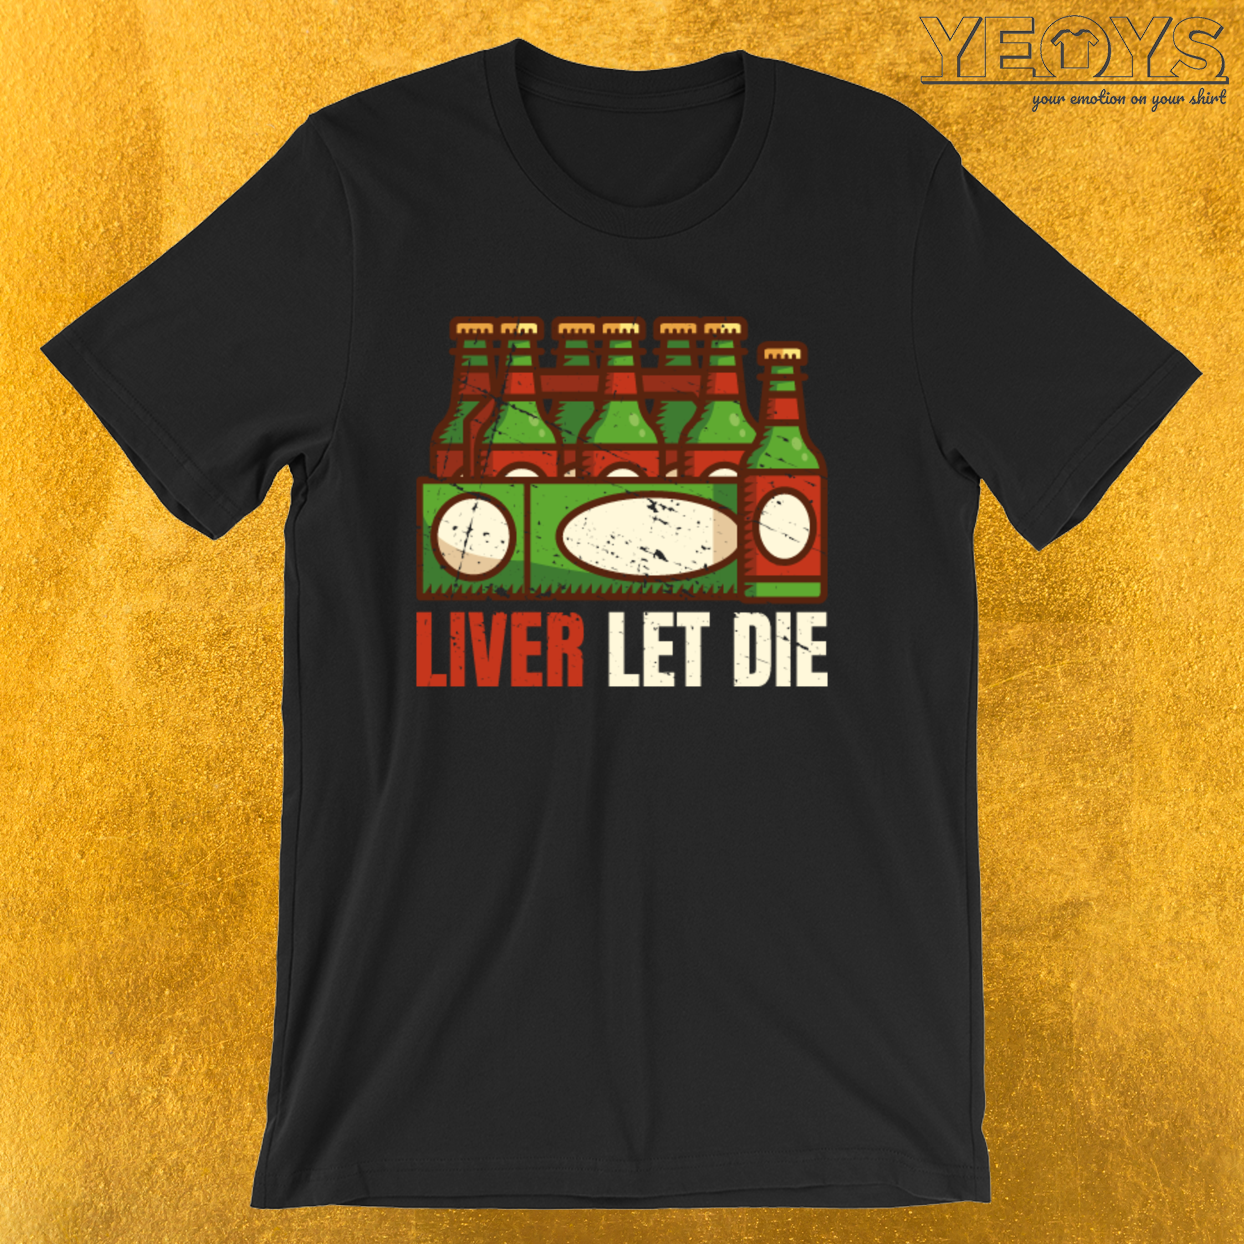 Liver Let Die – Funny Beer Quote Tee